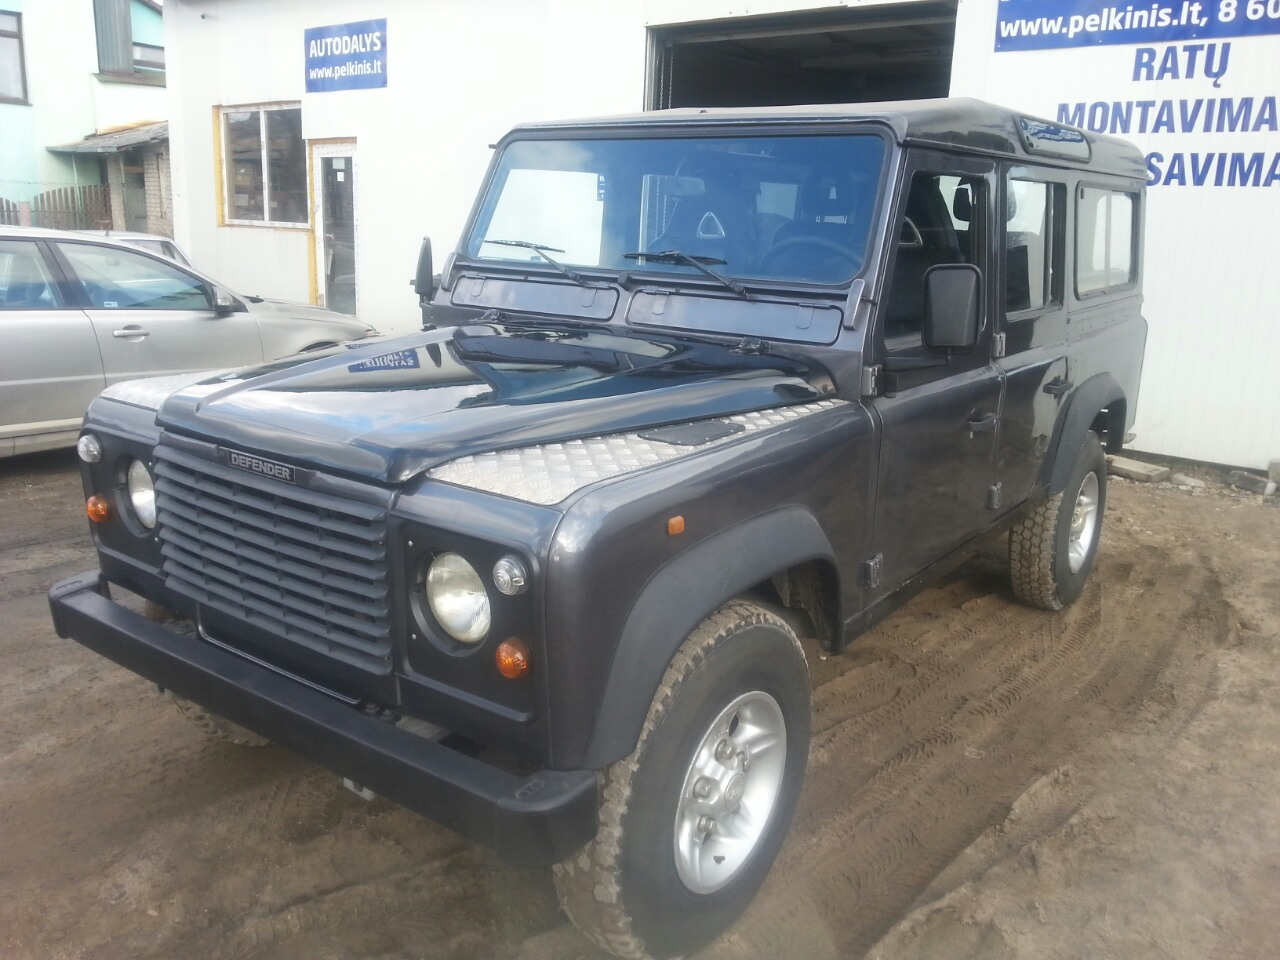 Defender 110 grey by pelkinis.lt